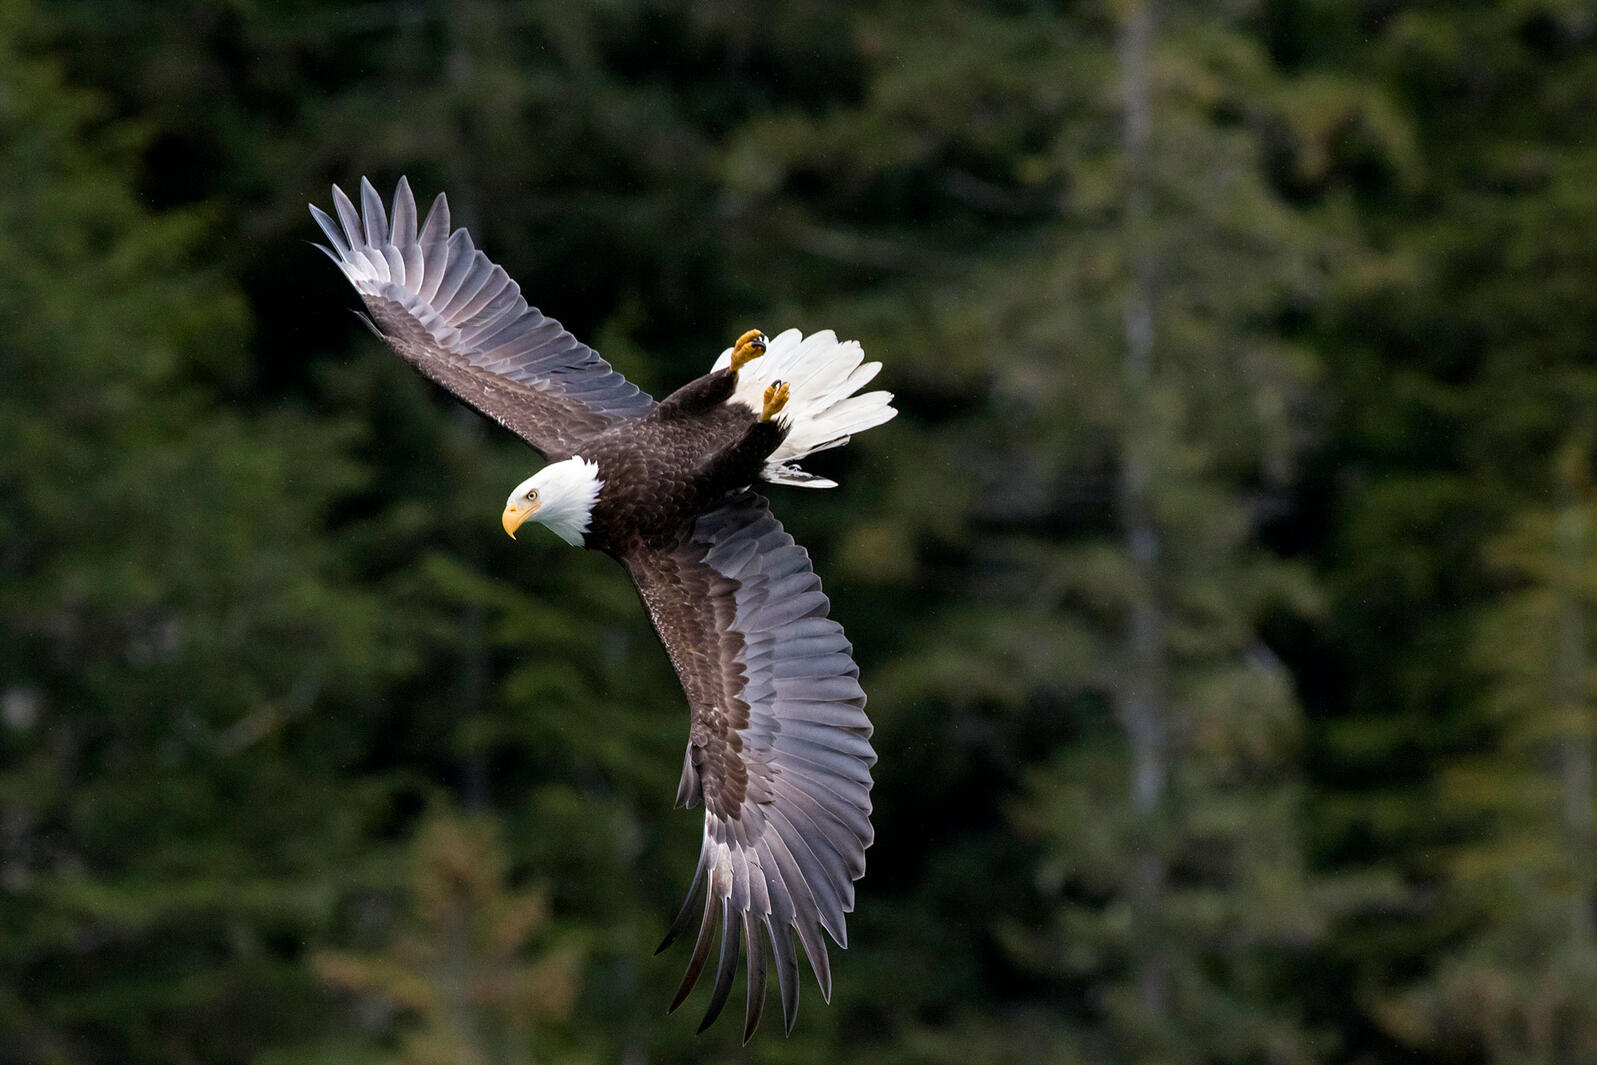 Petition: Trump Administration Removes Roadless Protections for Tongass National Forest